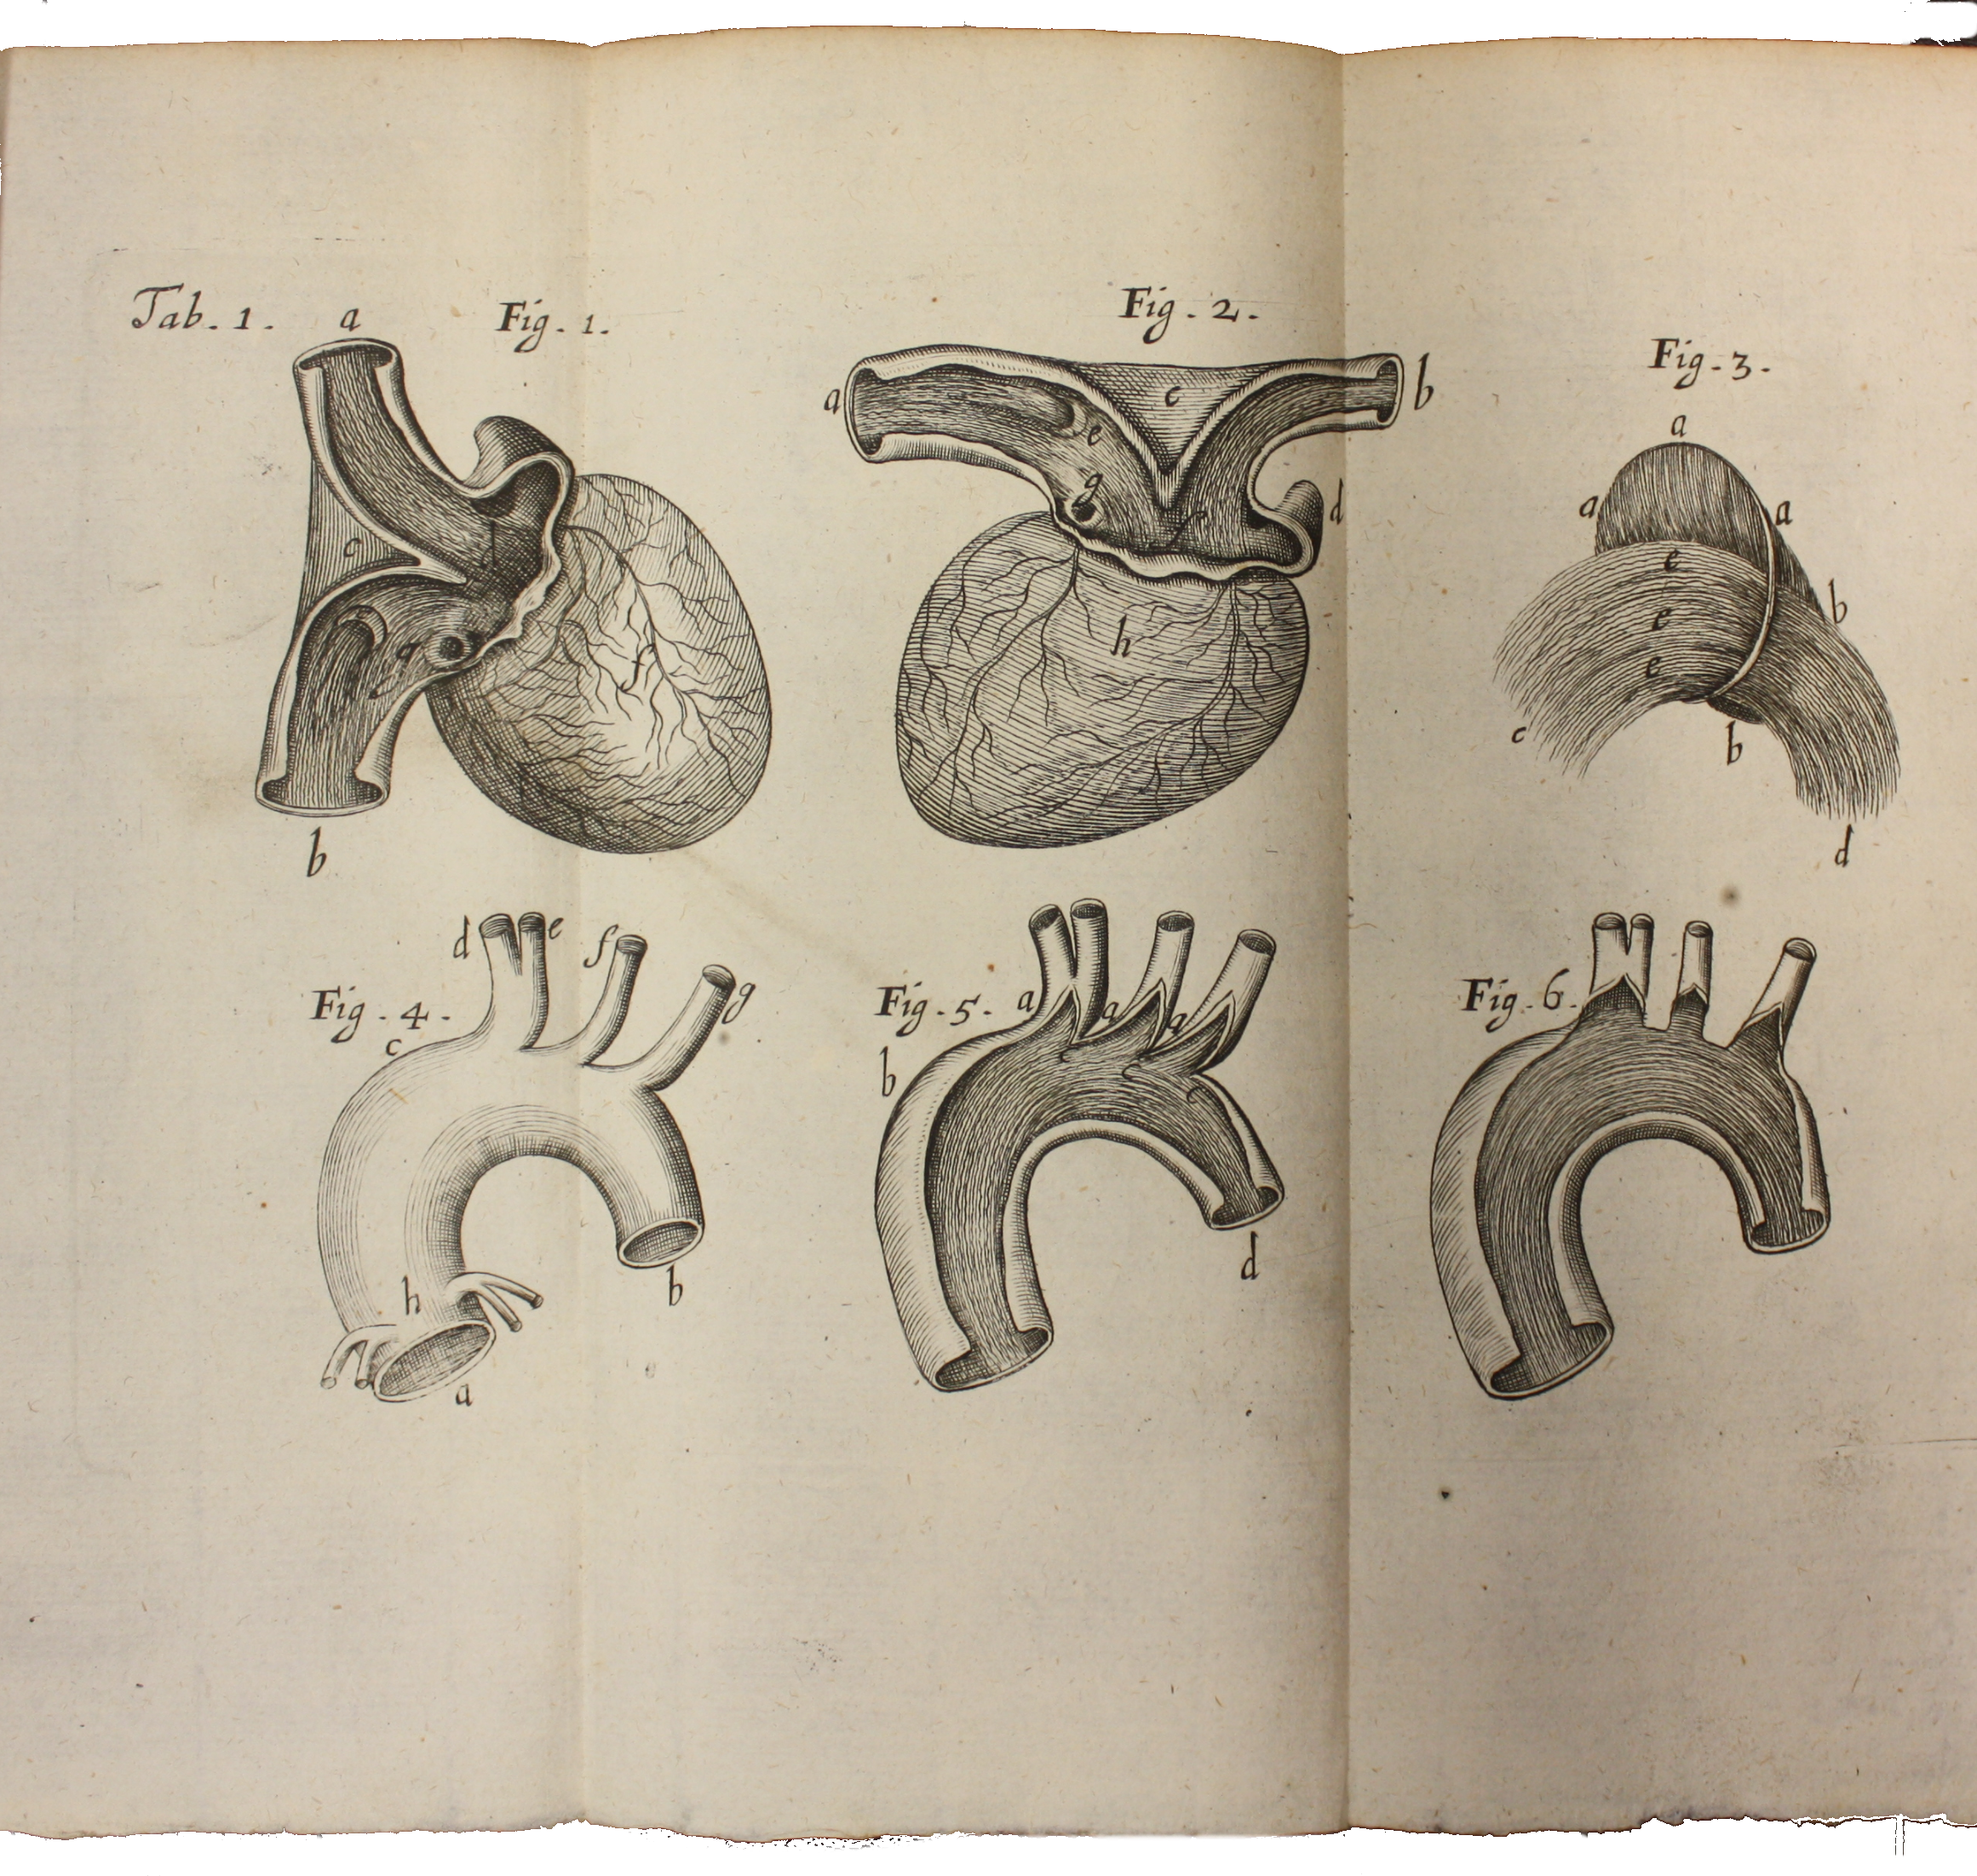 Engraved plate (table 1) showing diagrams of the heart